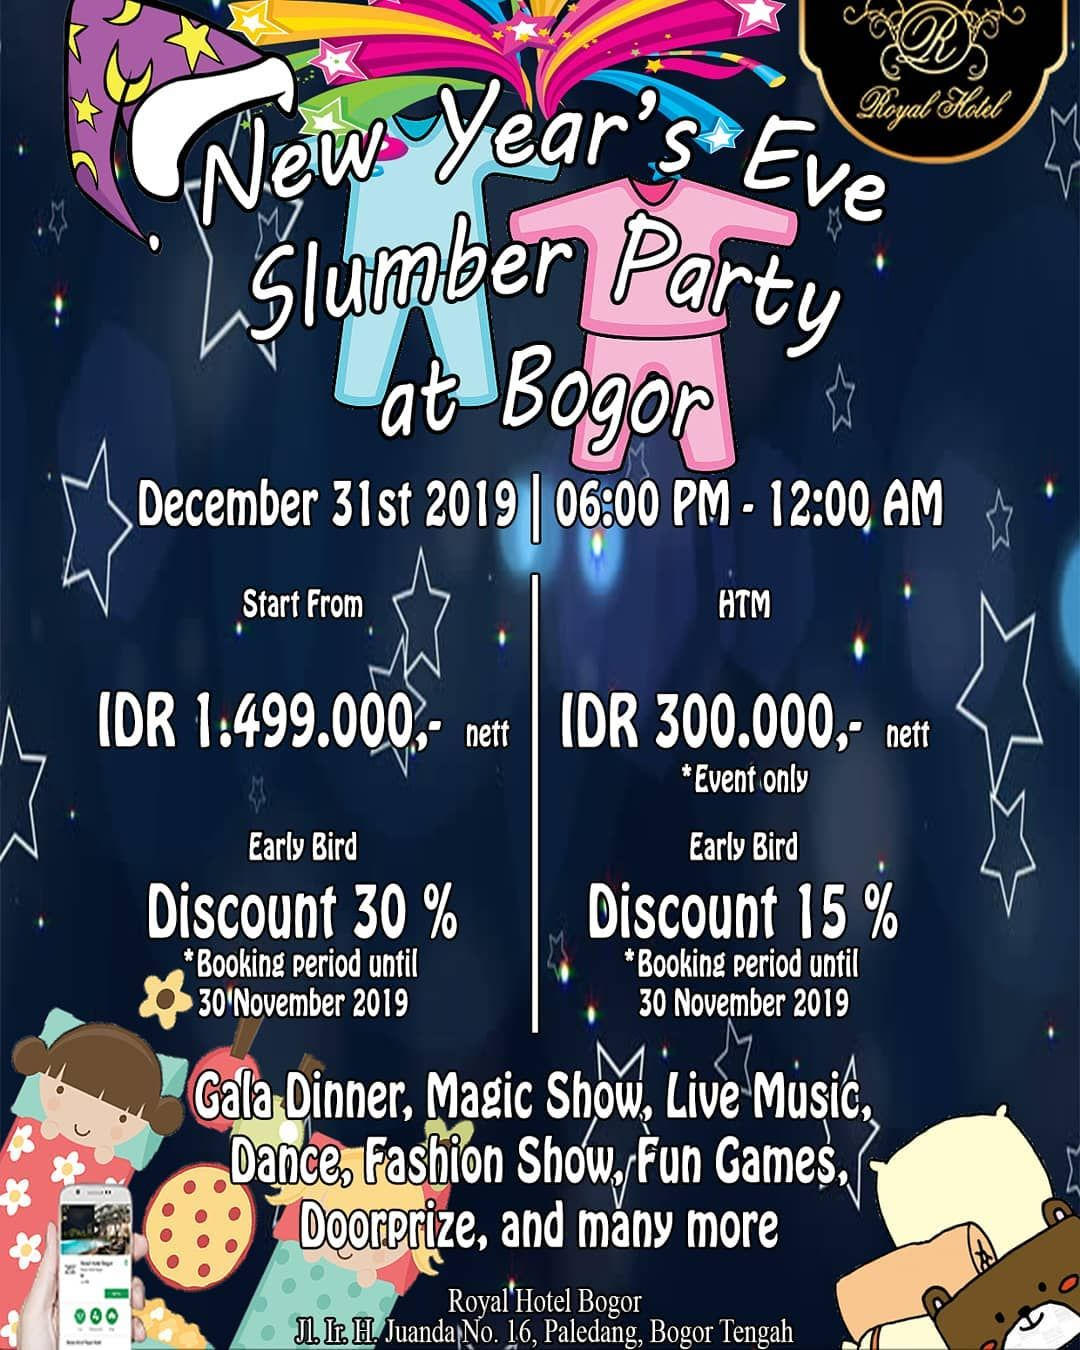 Royal Hotel Bogor Proudly Presents New Years Eve Slumber Party